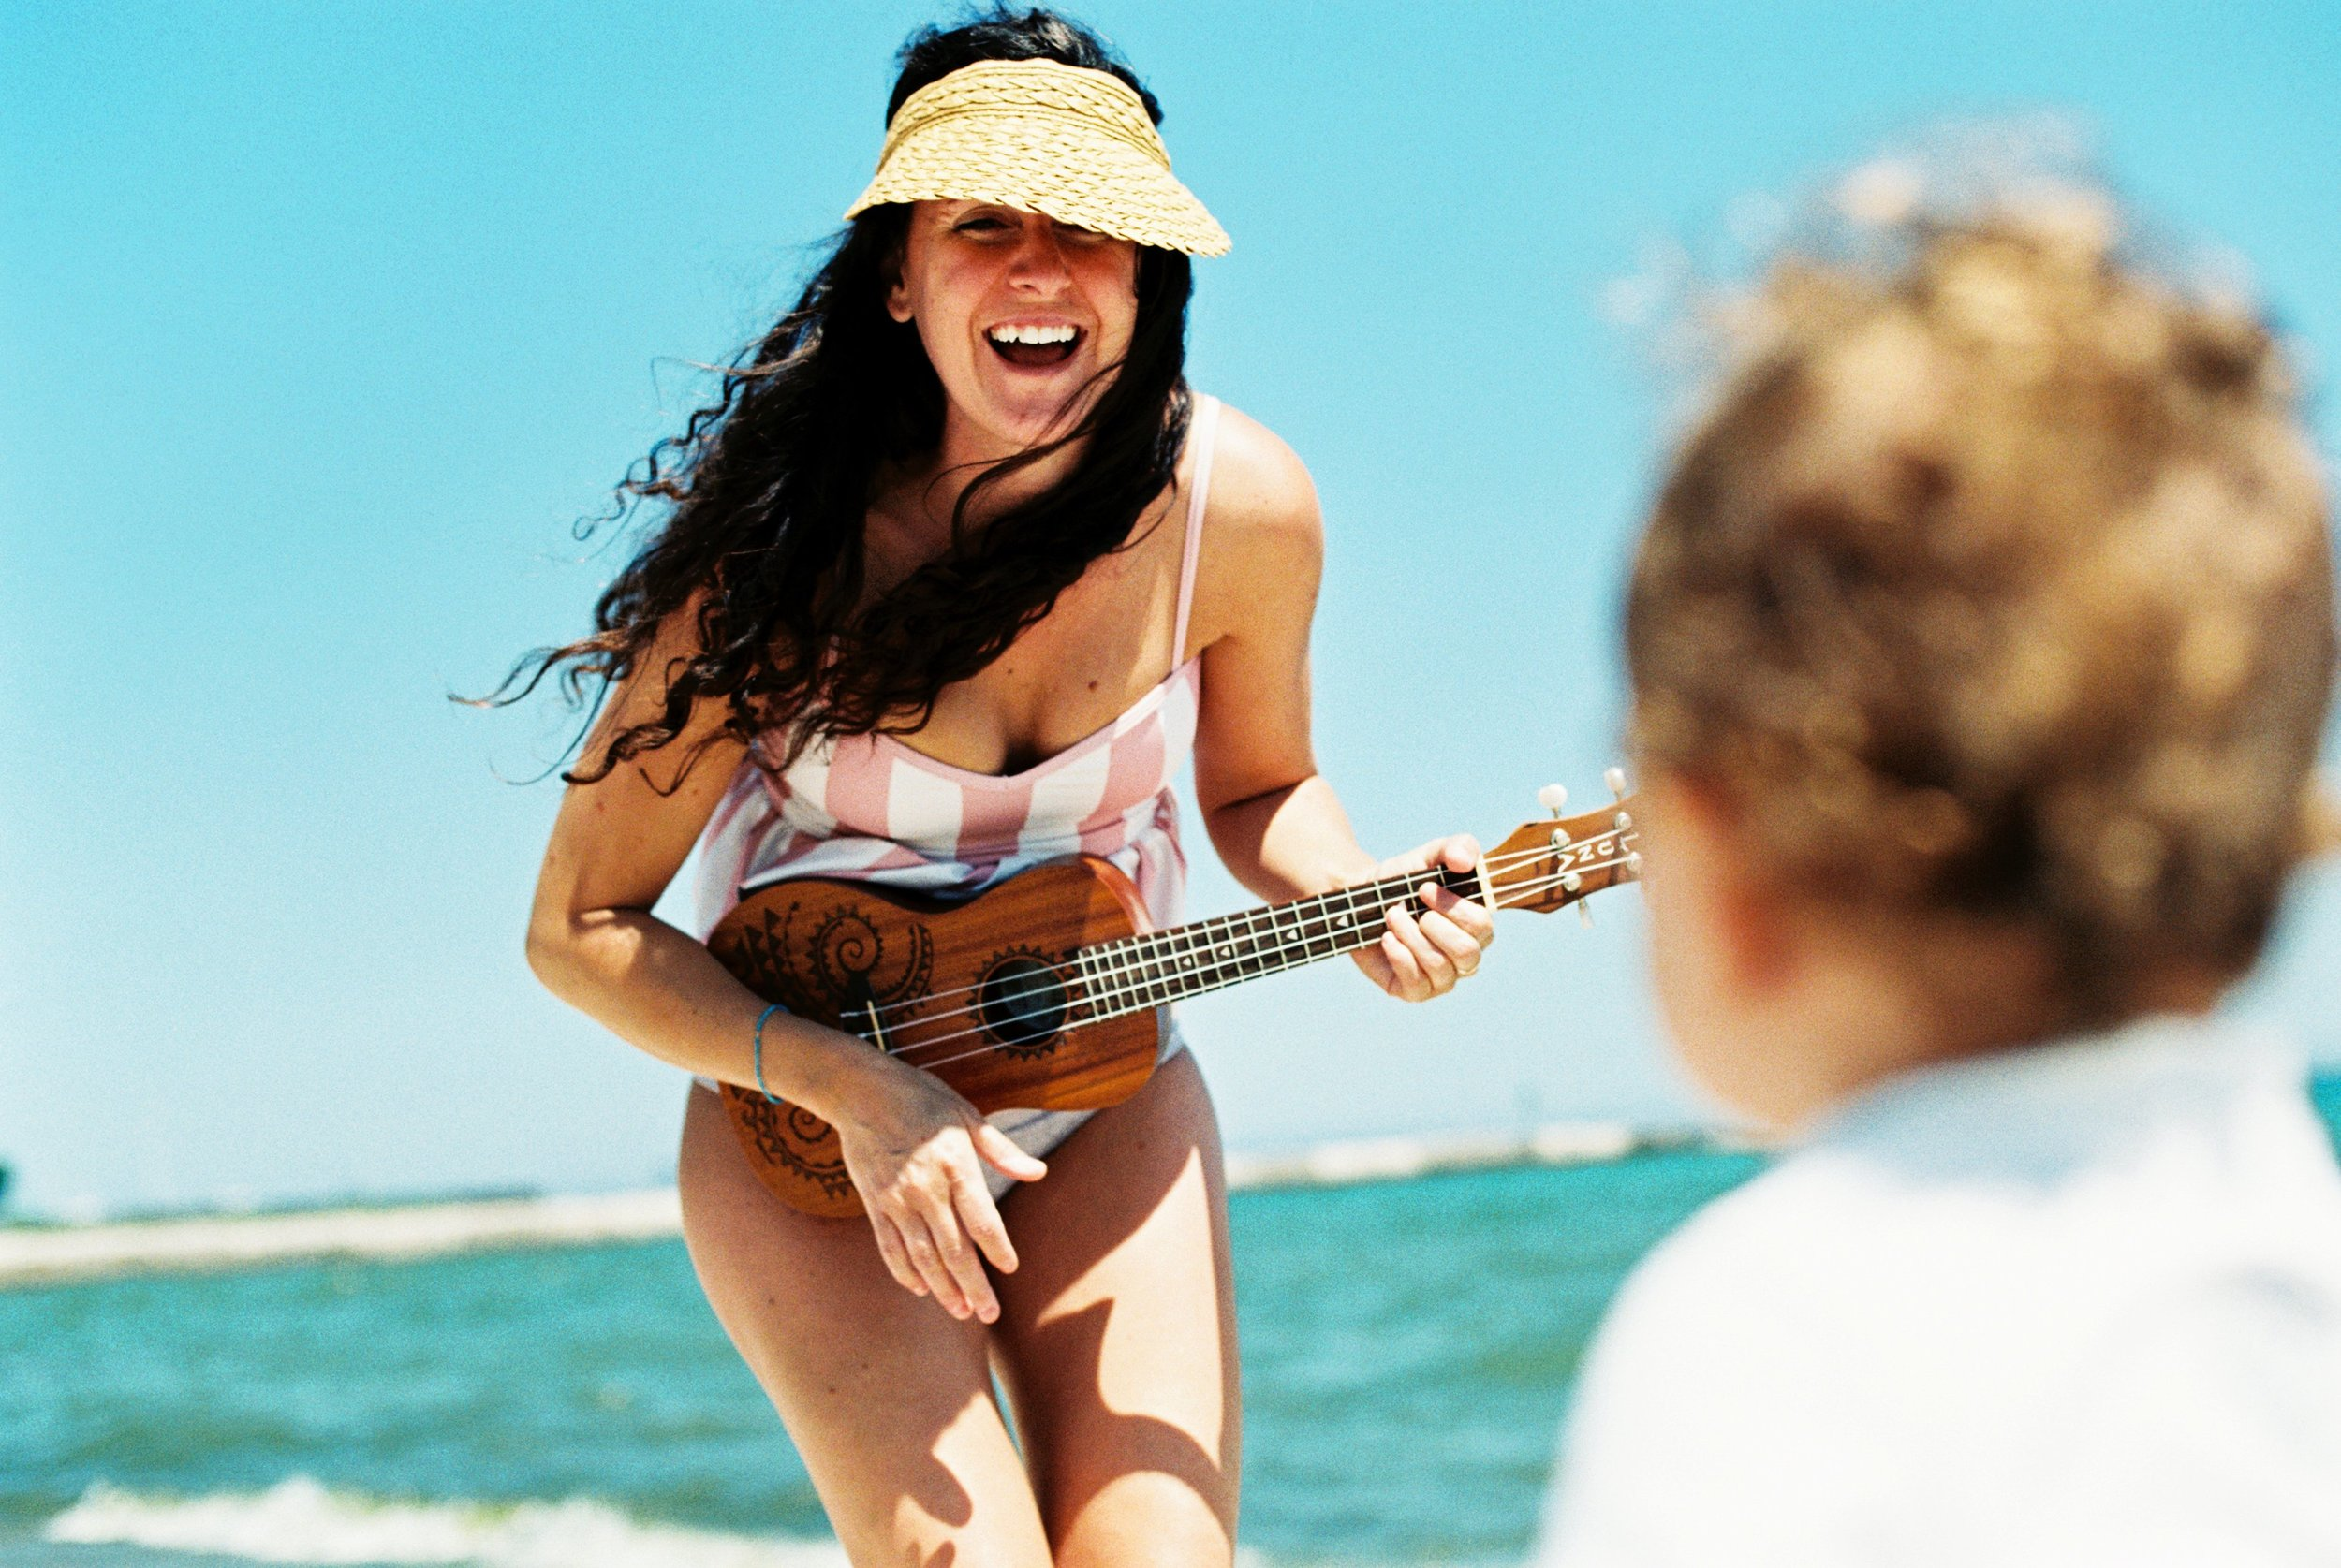 Summer Beach Mommy and Me Lifestyle Portrait Photographer Janelle Elaine Photography on film.jpg